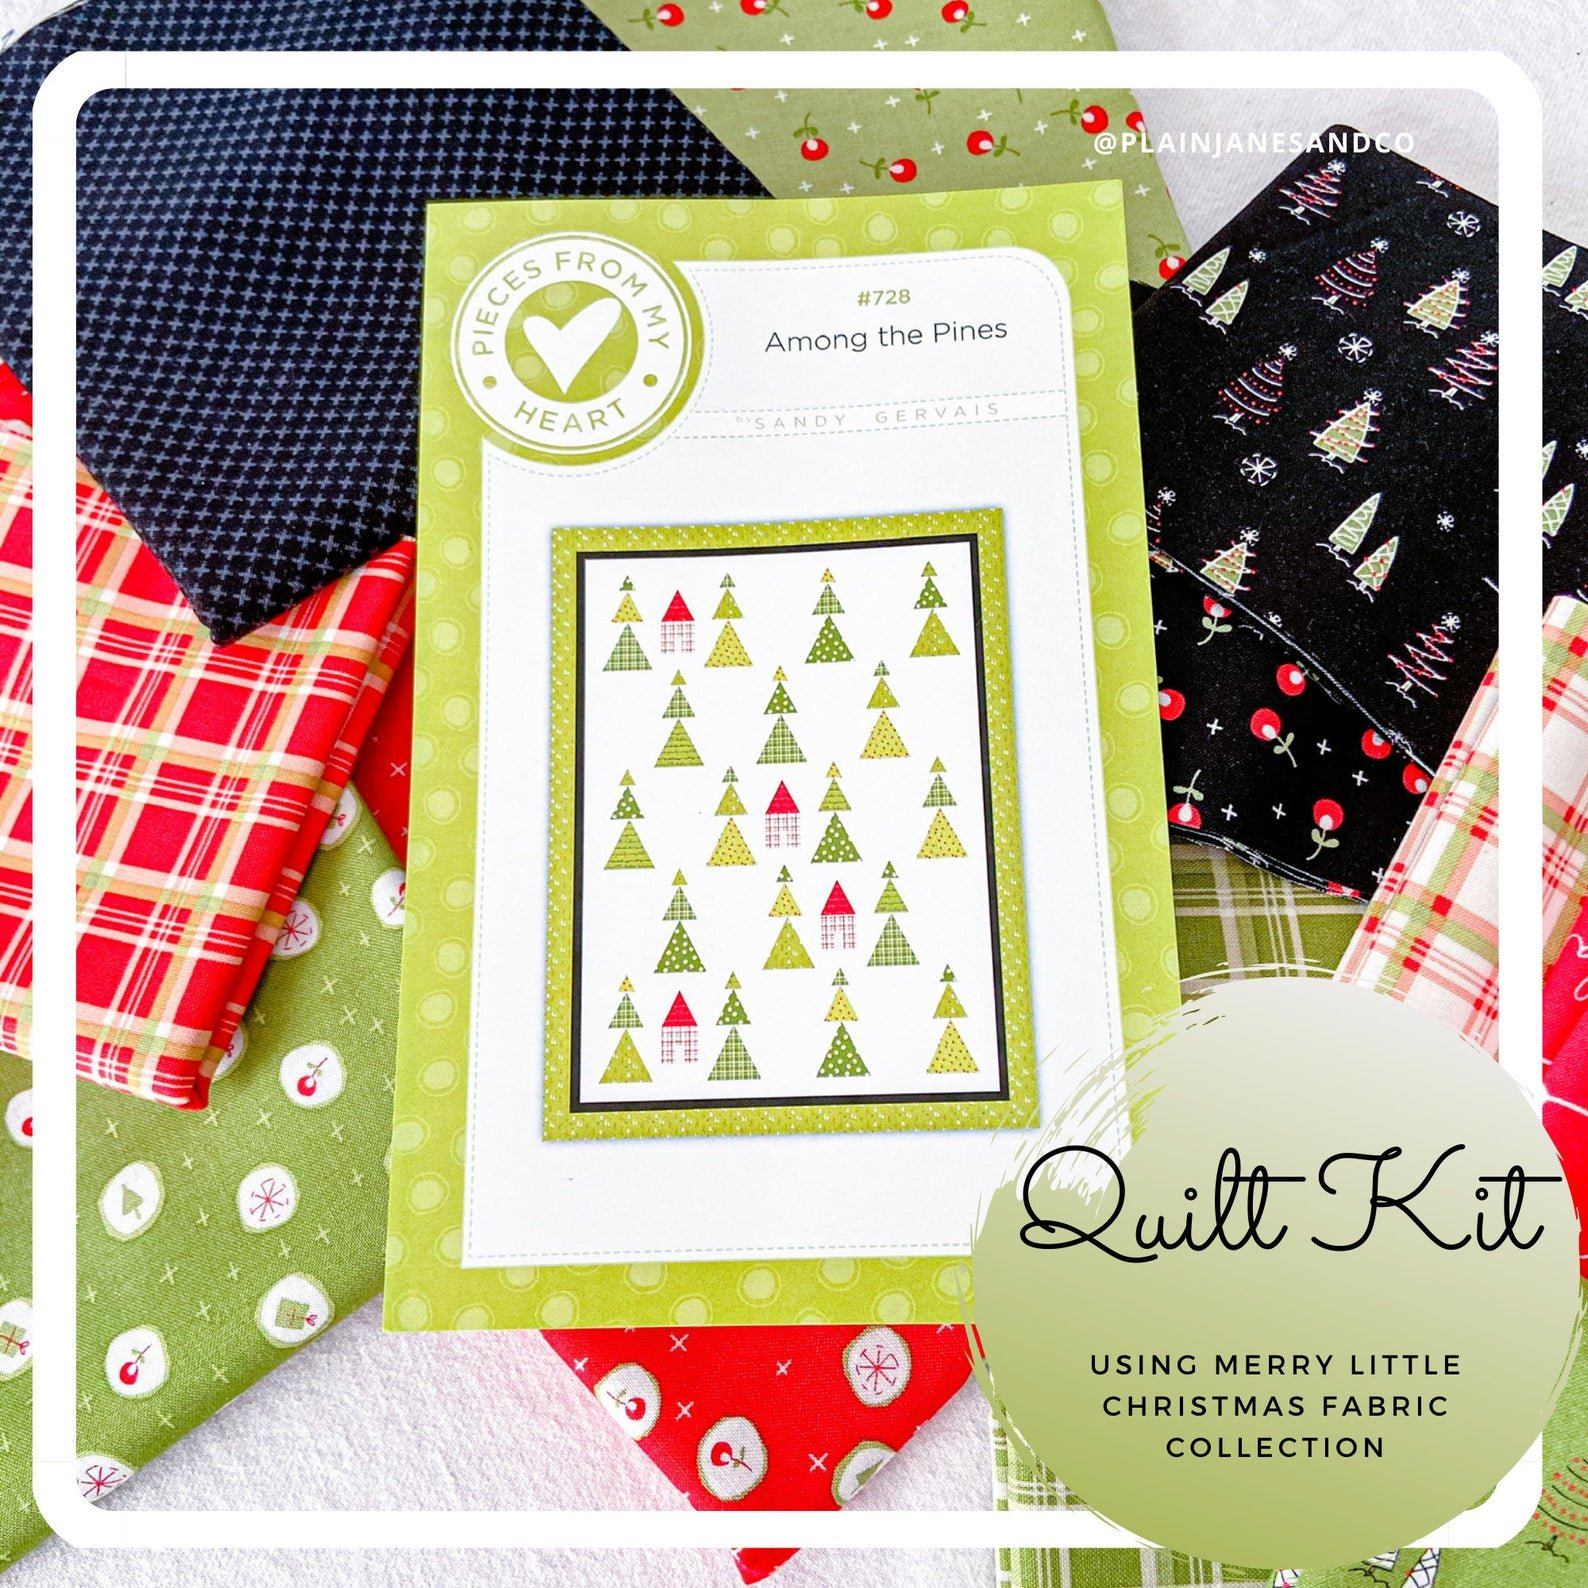 Among the Pines Quilt Kit by Sandy Gervais